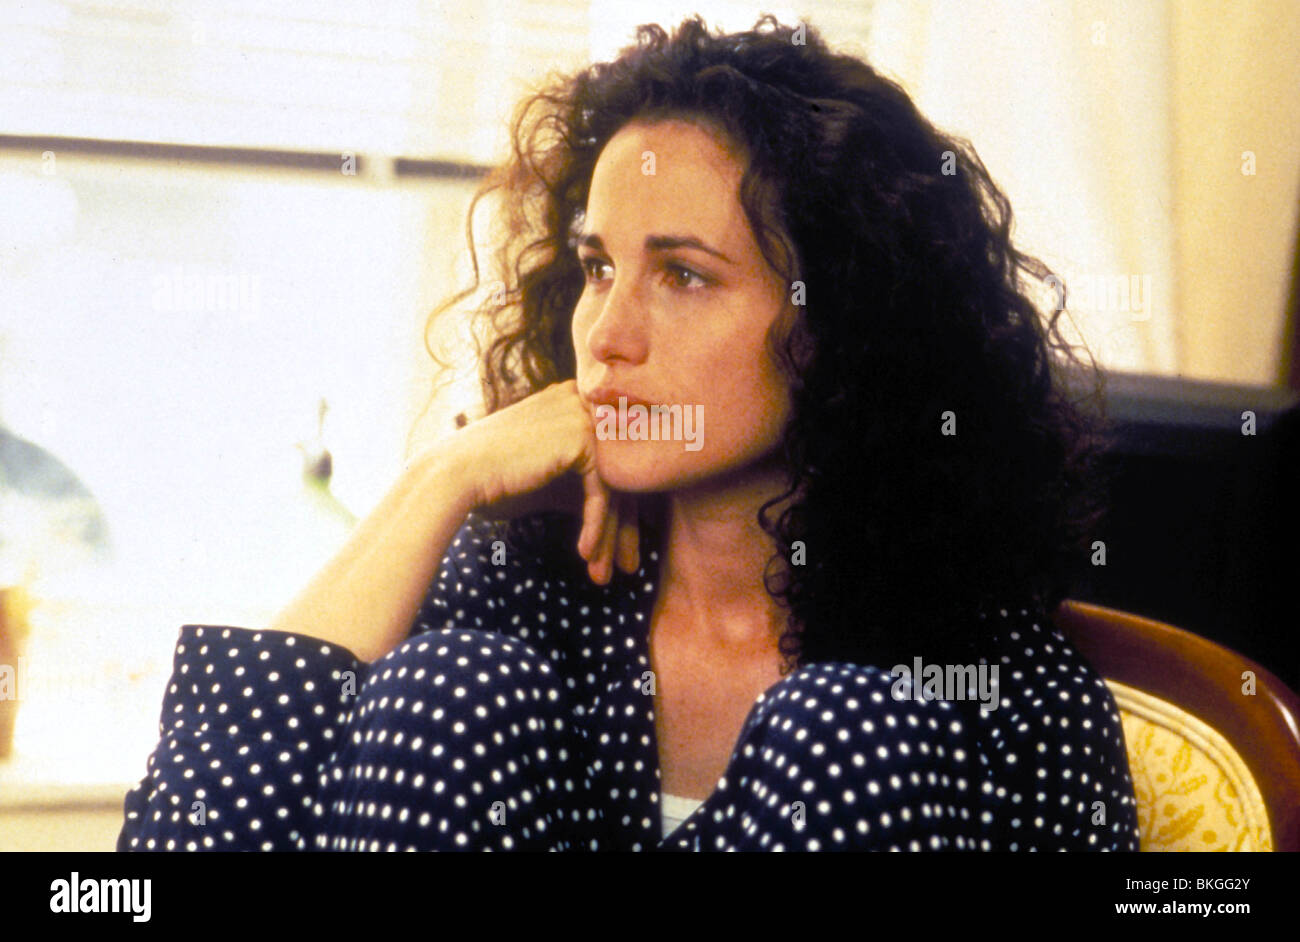 JUST THE TICKET (1999) ANDIE MACDOWELL JTT 020 - Stock Image